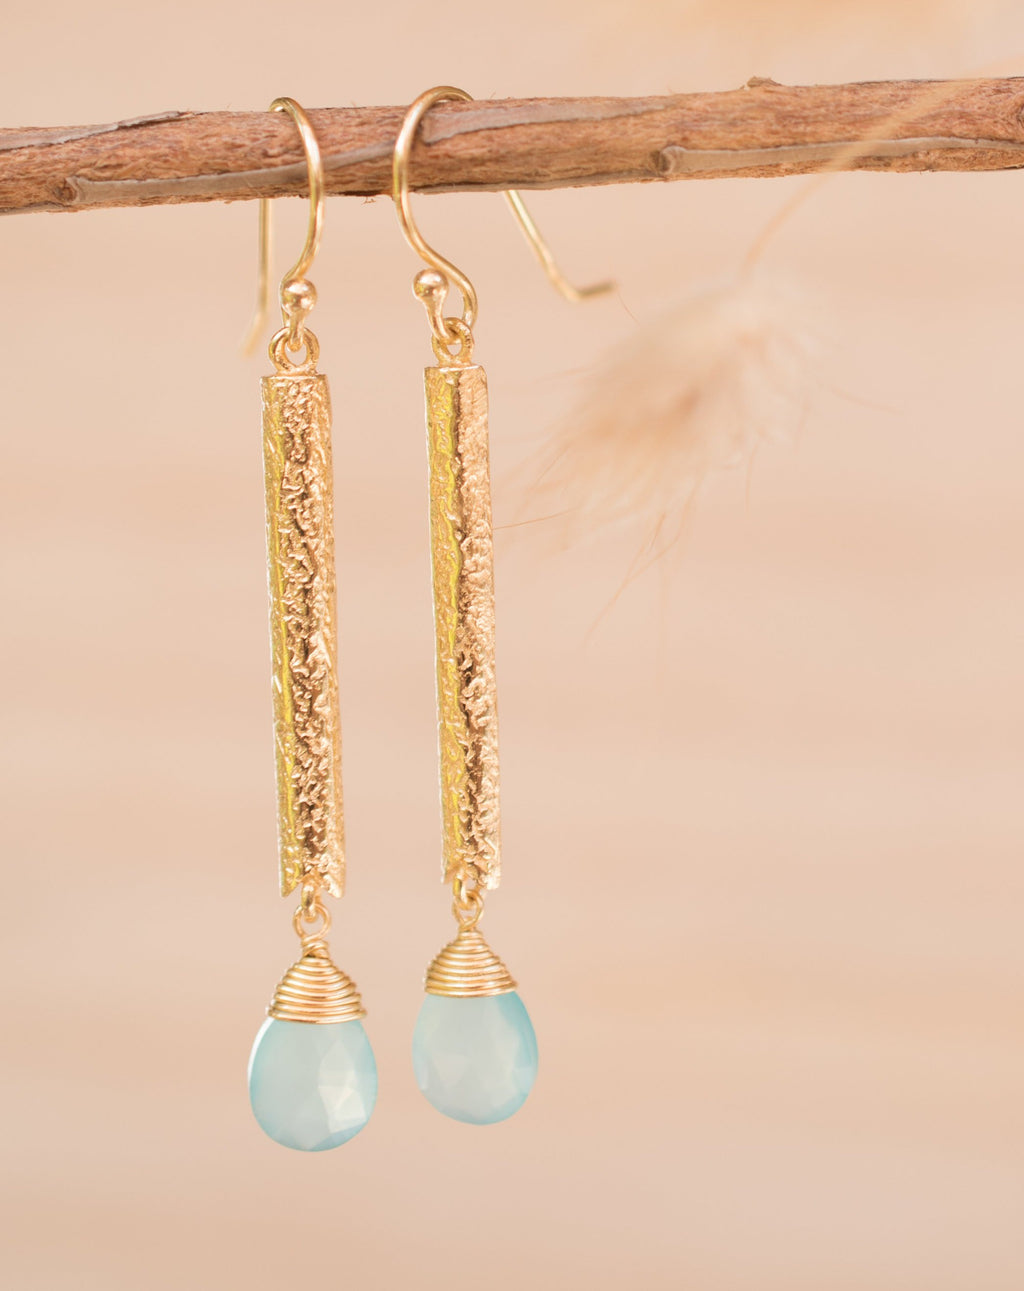 Catarina Earrings * Aqua Chalcedony * Gold Plated 18k * BJE134